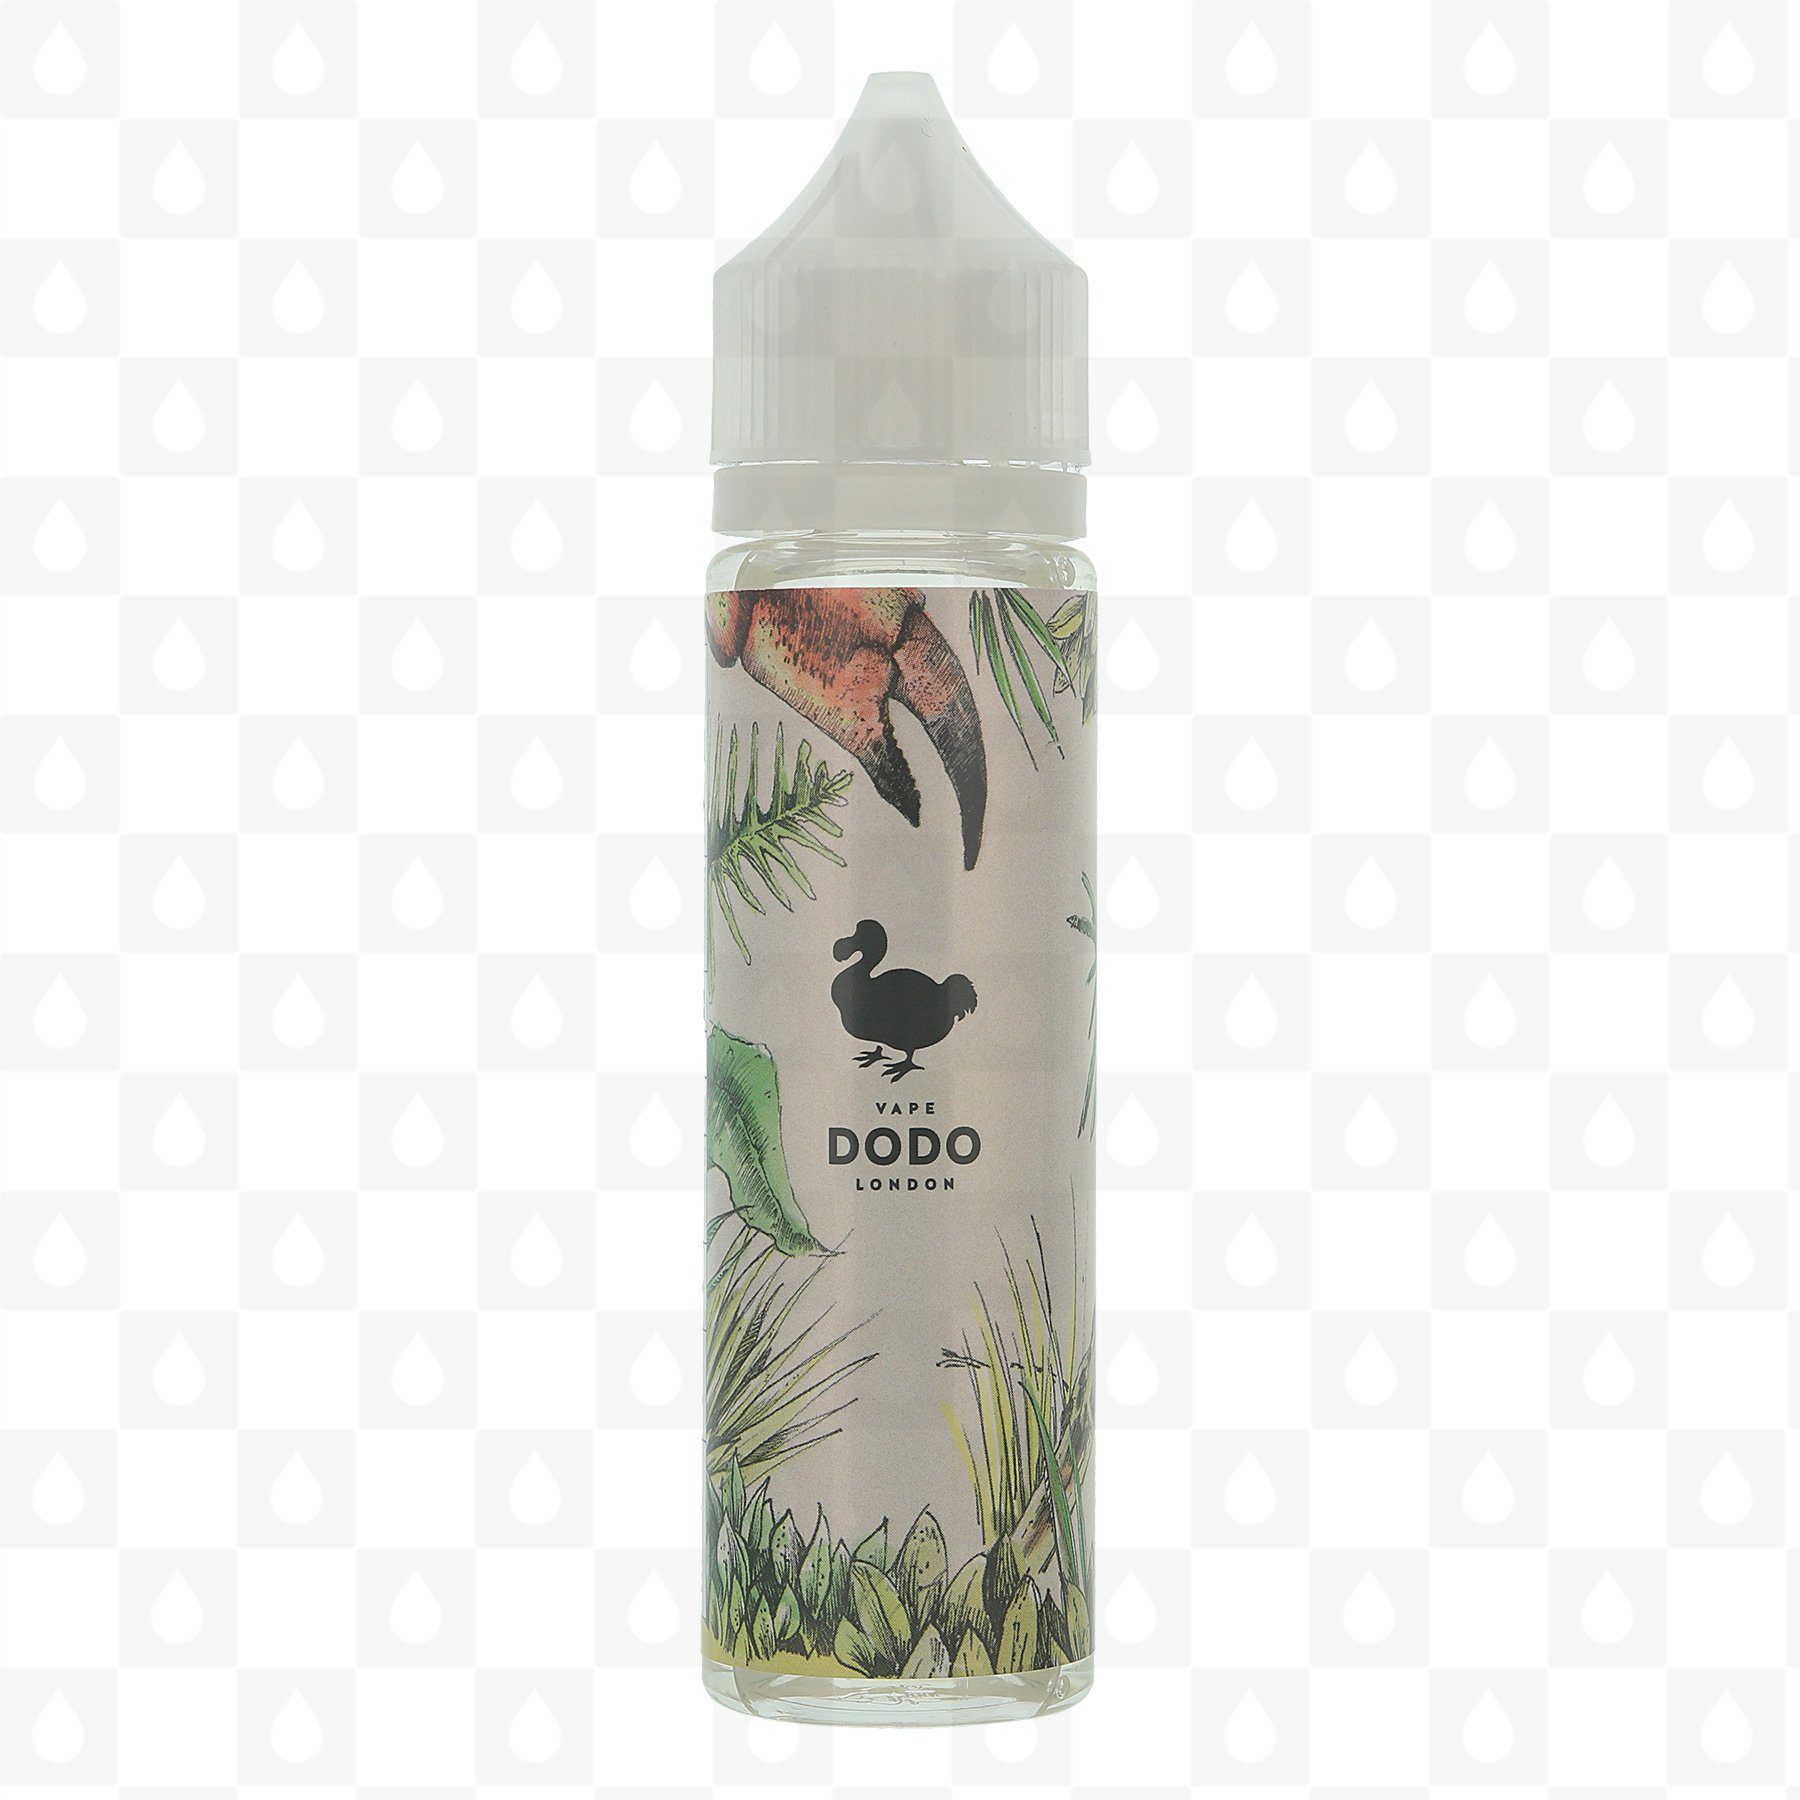 Vape Dodo Cast-Away Coconut 50ml Shortfill E-Liquid